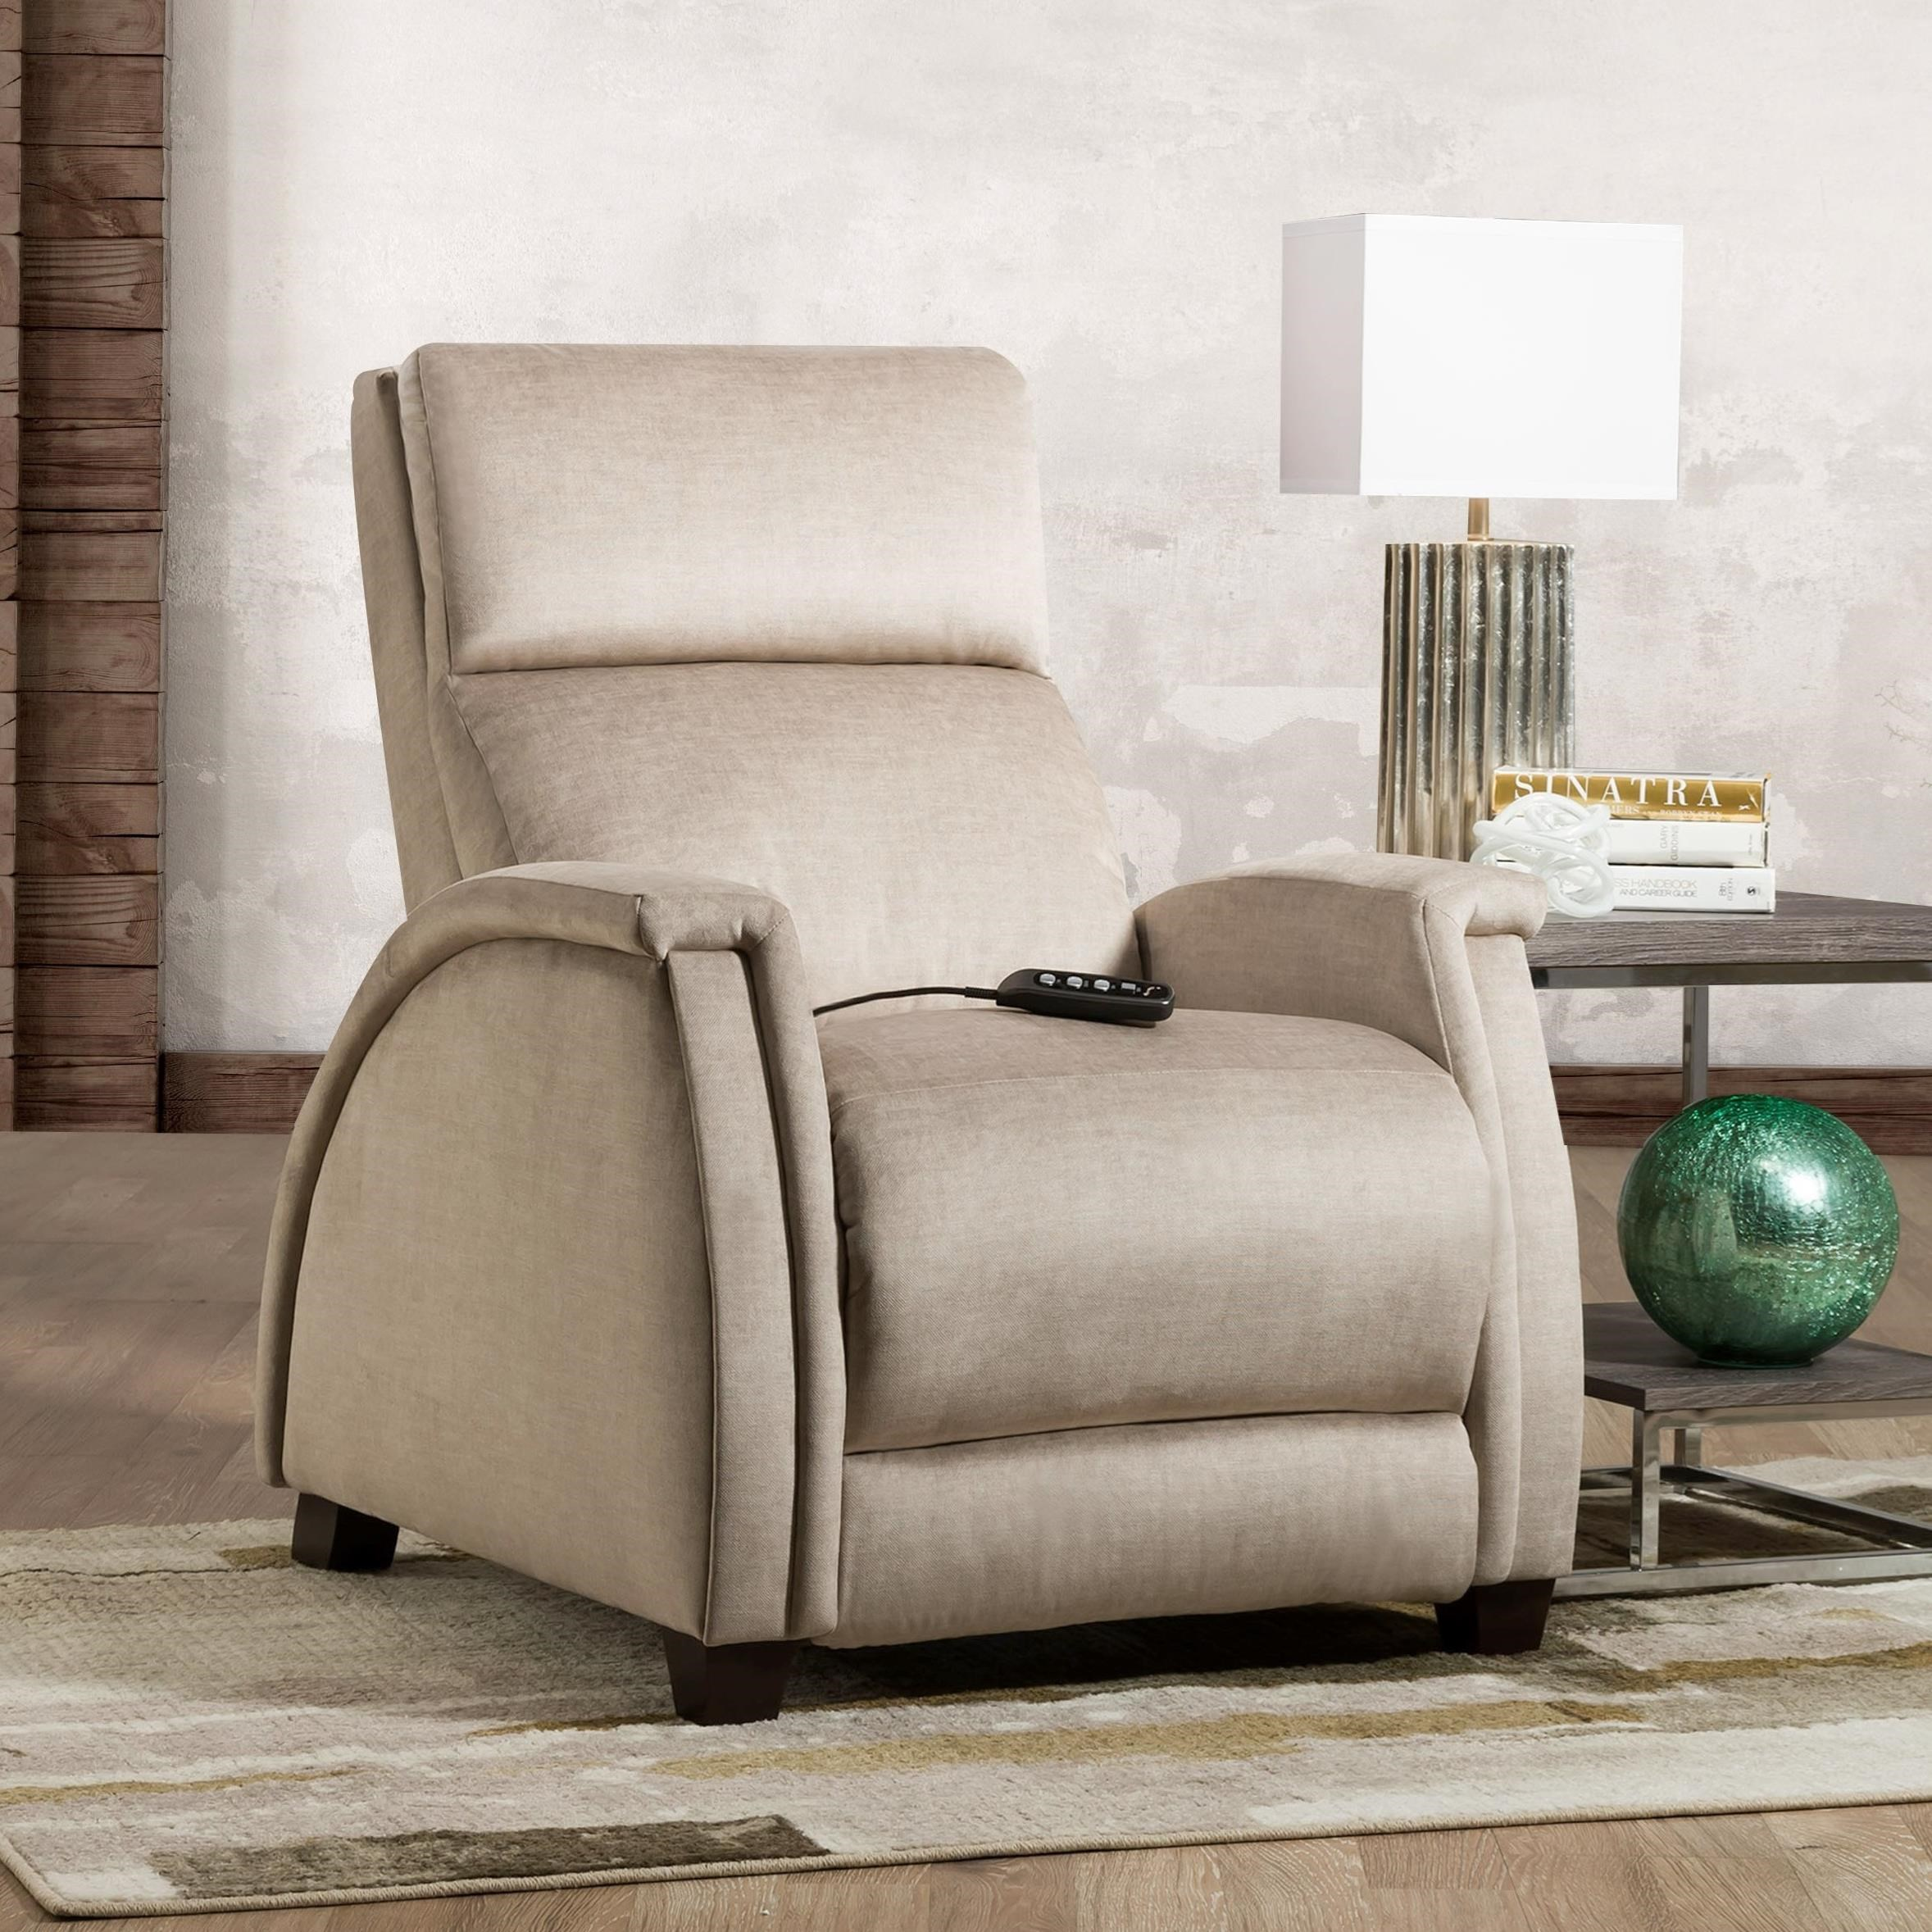 Venus Zero Gravity Wallhugger Recliner with SoCozi by Southern Motion at Sparks HomeStore